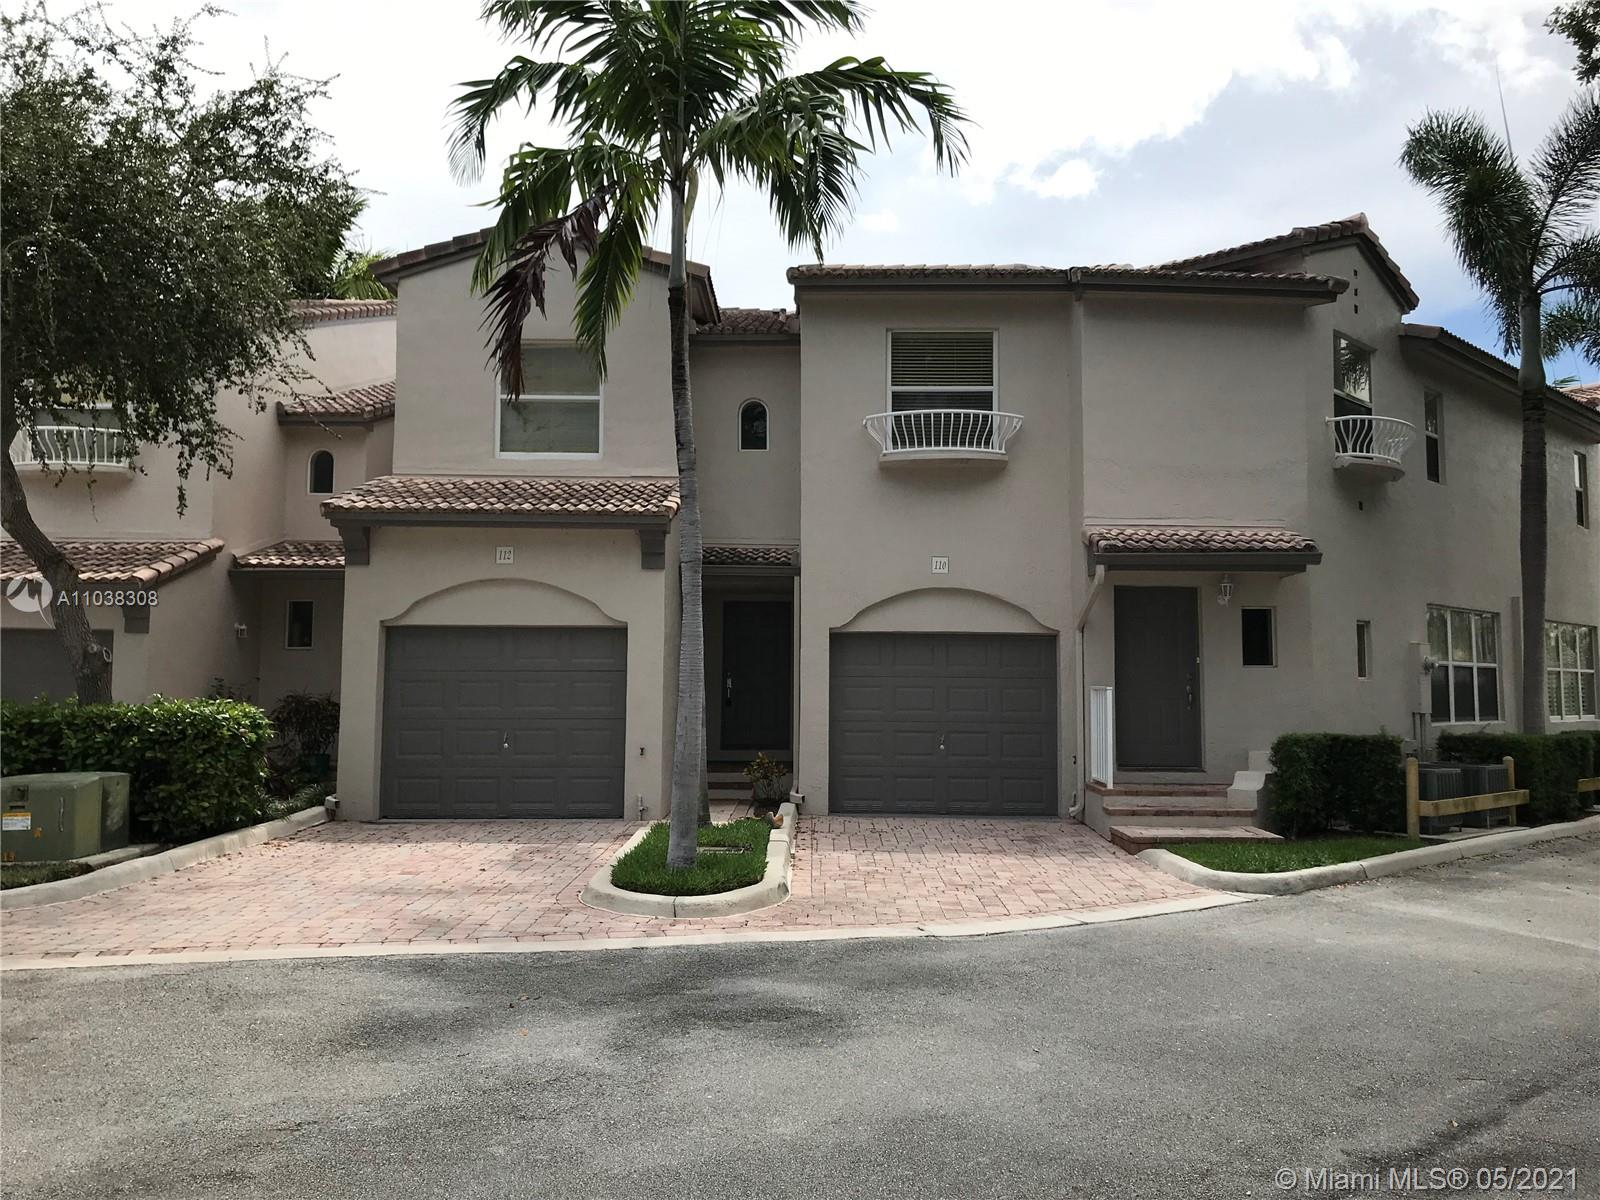 Gated Community , 2-story Townhome just across from the beach in wonderful Lauderdale By The Sea, 2 Bedrooms , 2.5 Baths, 1 Car Garage, Washer and Dryer in Unit, Community Pool and Fitness Area, Dishwasher, Kitchen, Separate dining room, Double Sinks and Roman Tub in Master with Separate Shower, Outside area off Mediterranean Style Courtyard with room for a Grill just outside your back door, Ample Guest Parking, 2 vehicle per unit allowed. New roof Year 2021. A Must See!